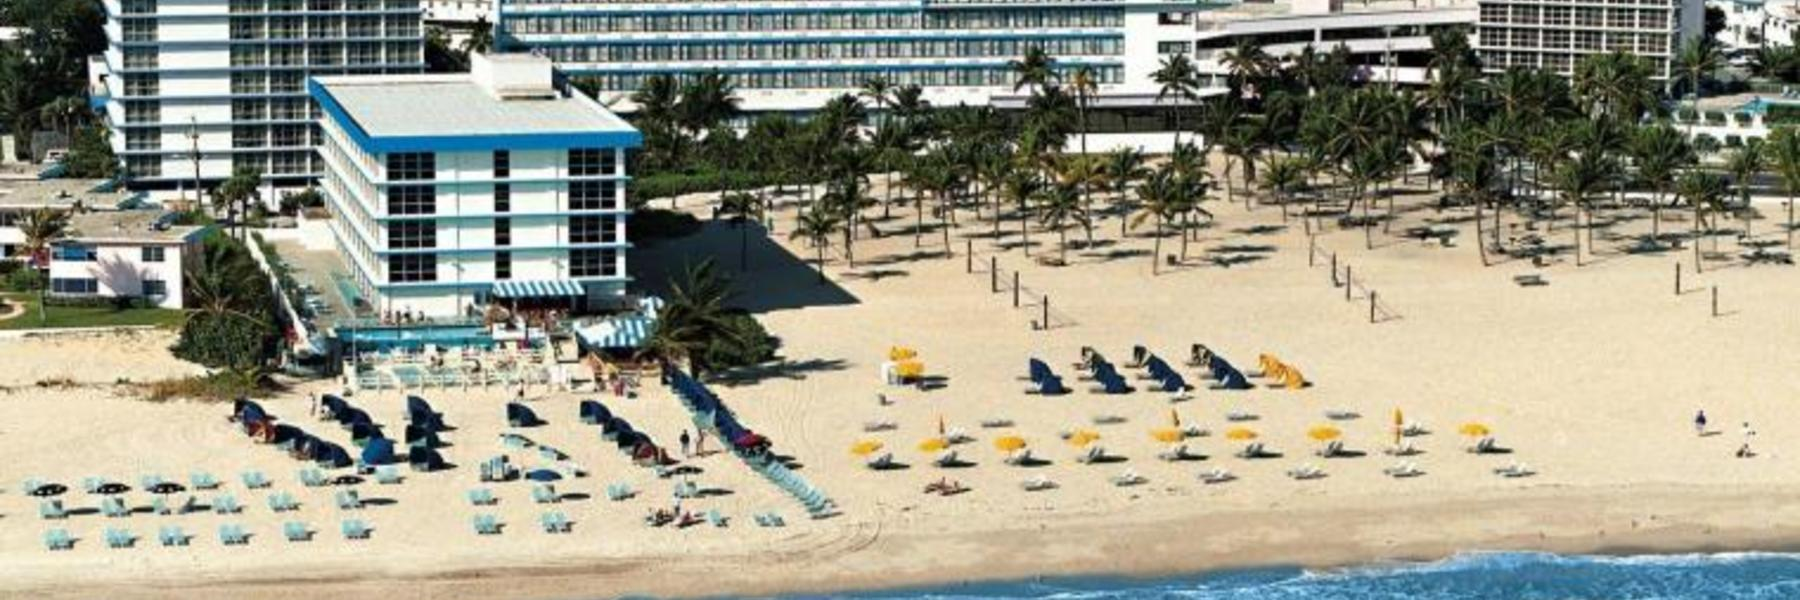 Golf Vacation Package - Fort Lauderdale Summer Sensation Package from $127 per day!